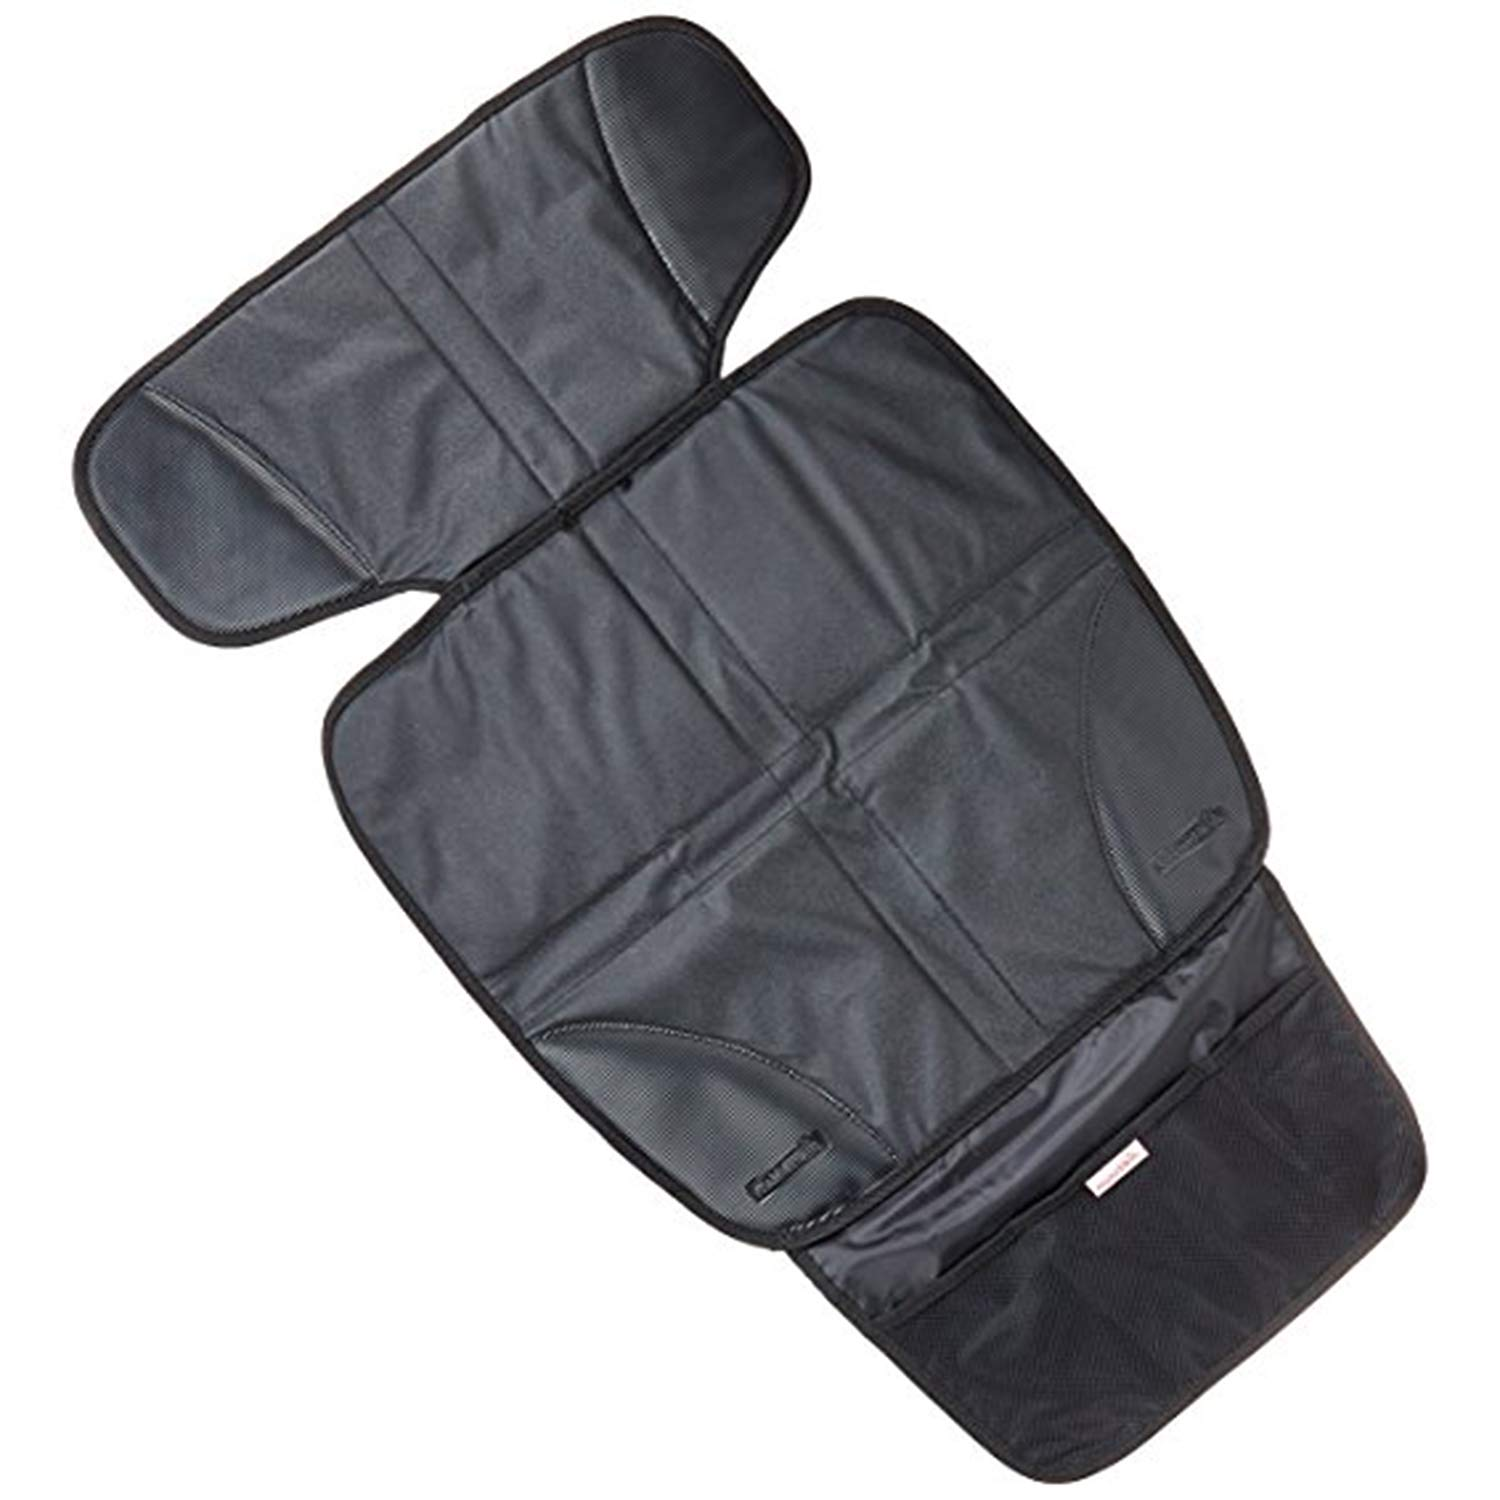 Munchkin Auto Seat Protector, 1 Count by Munchkin (Image #5)